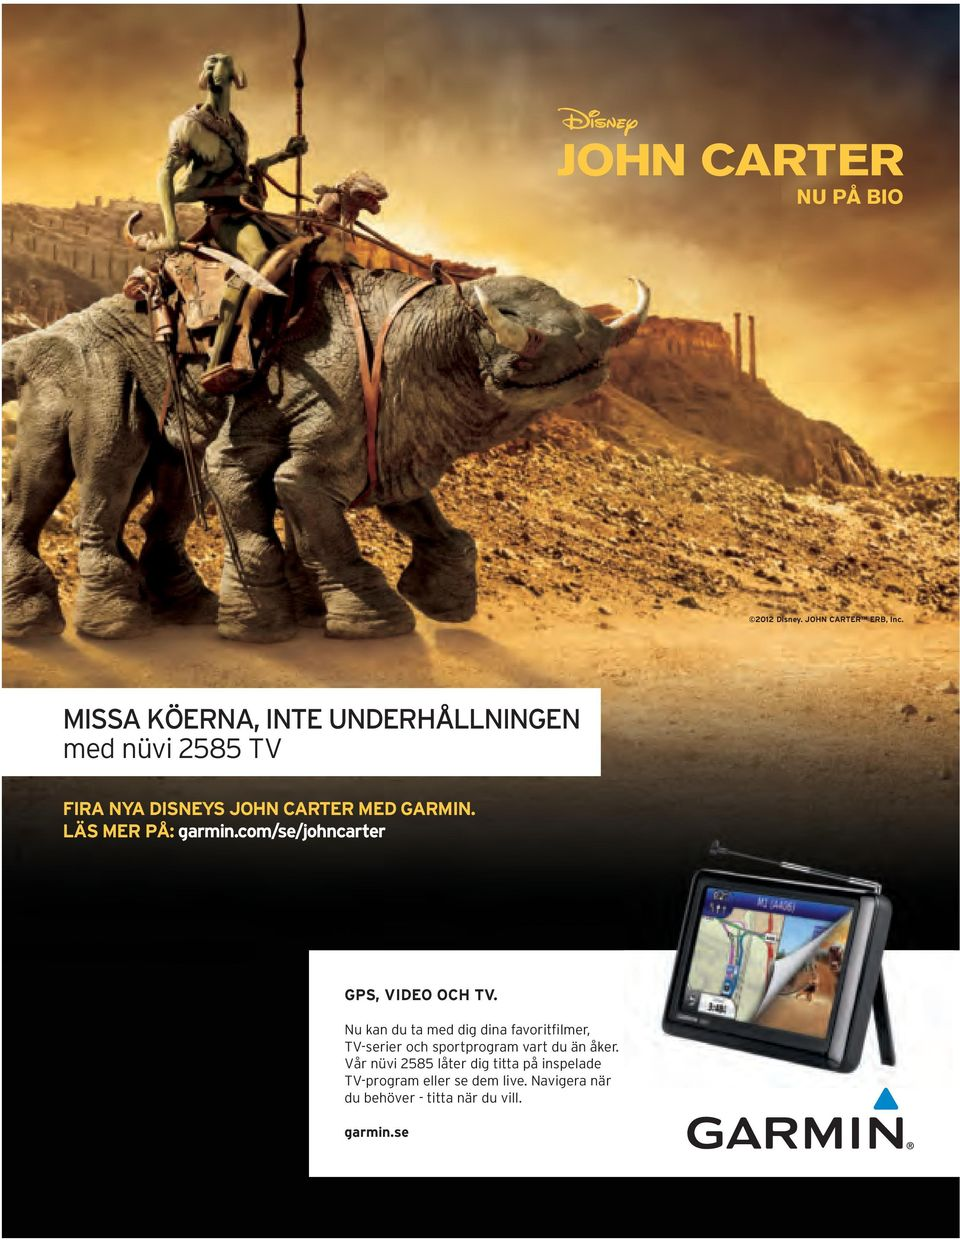 LÄS MER PÅ: garmin.com/se/johncarter GPS, VIDEO OCH TV.